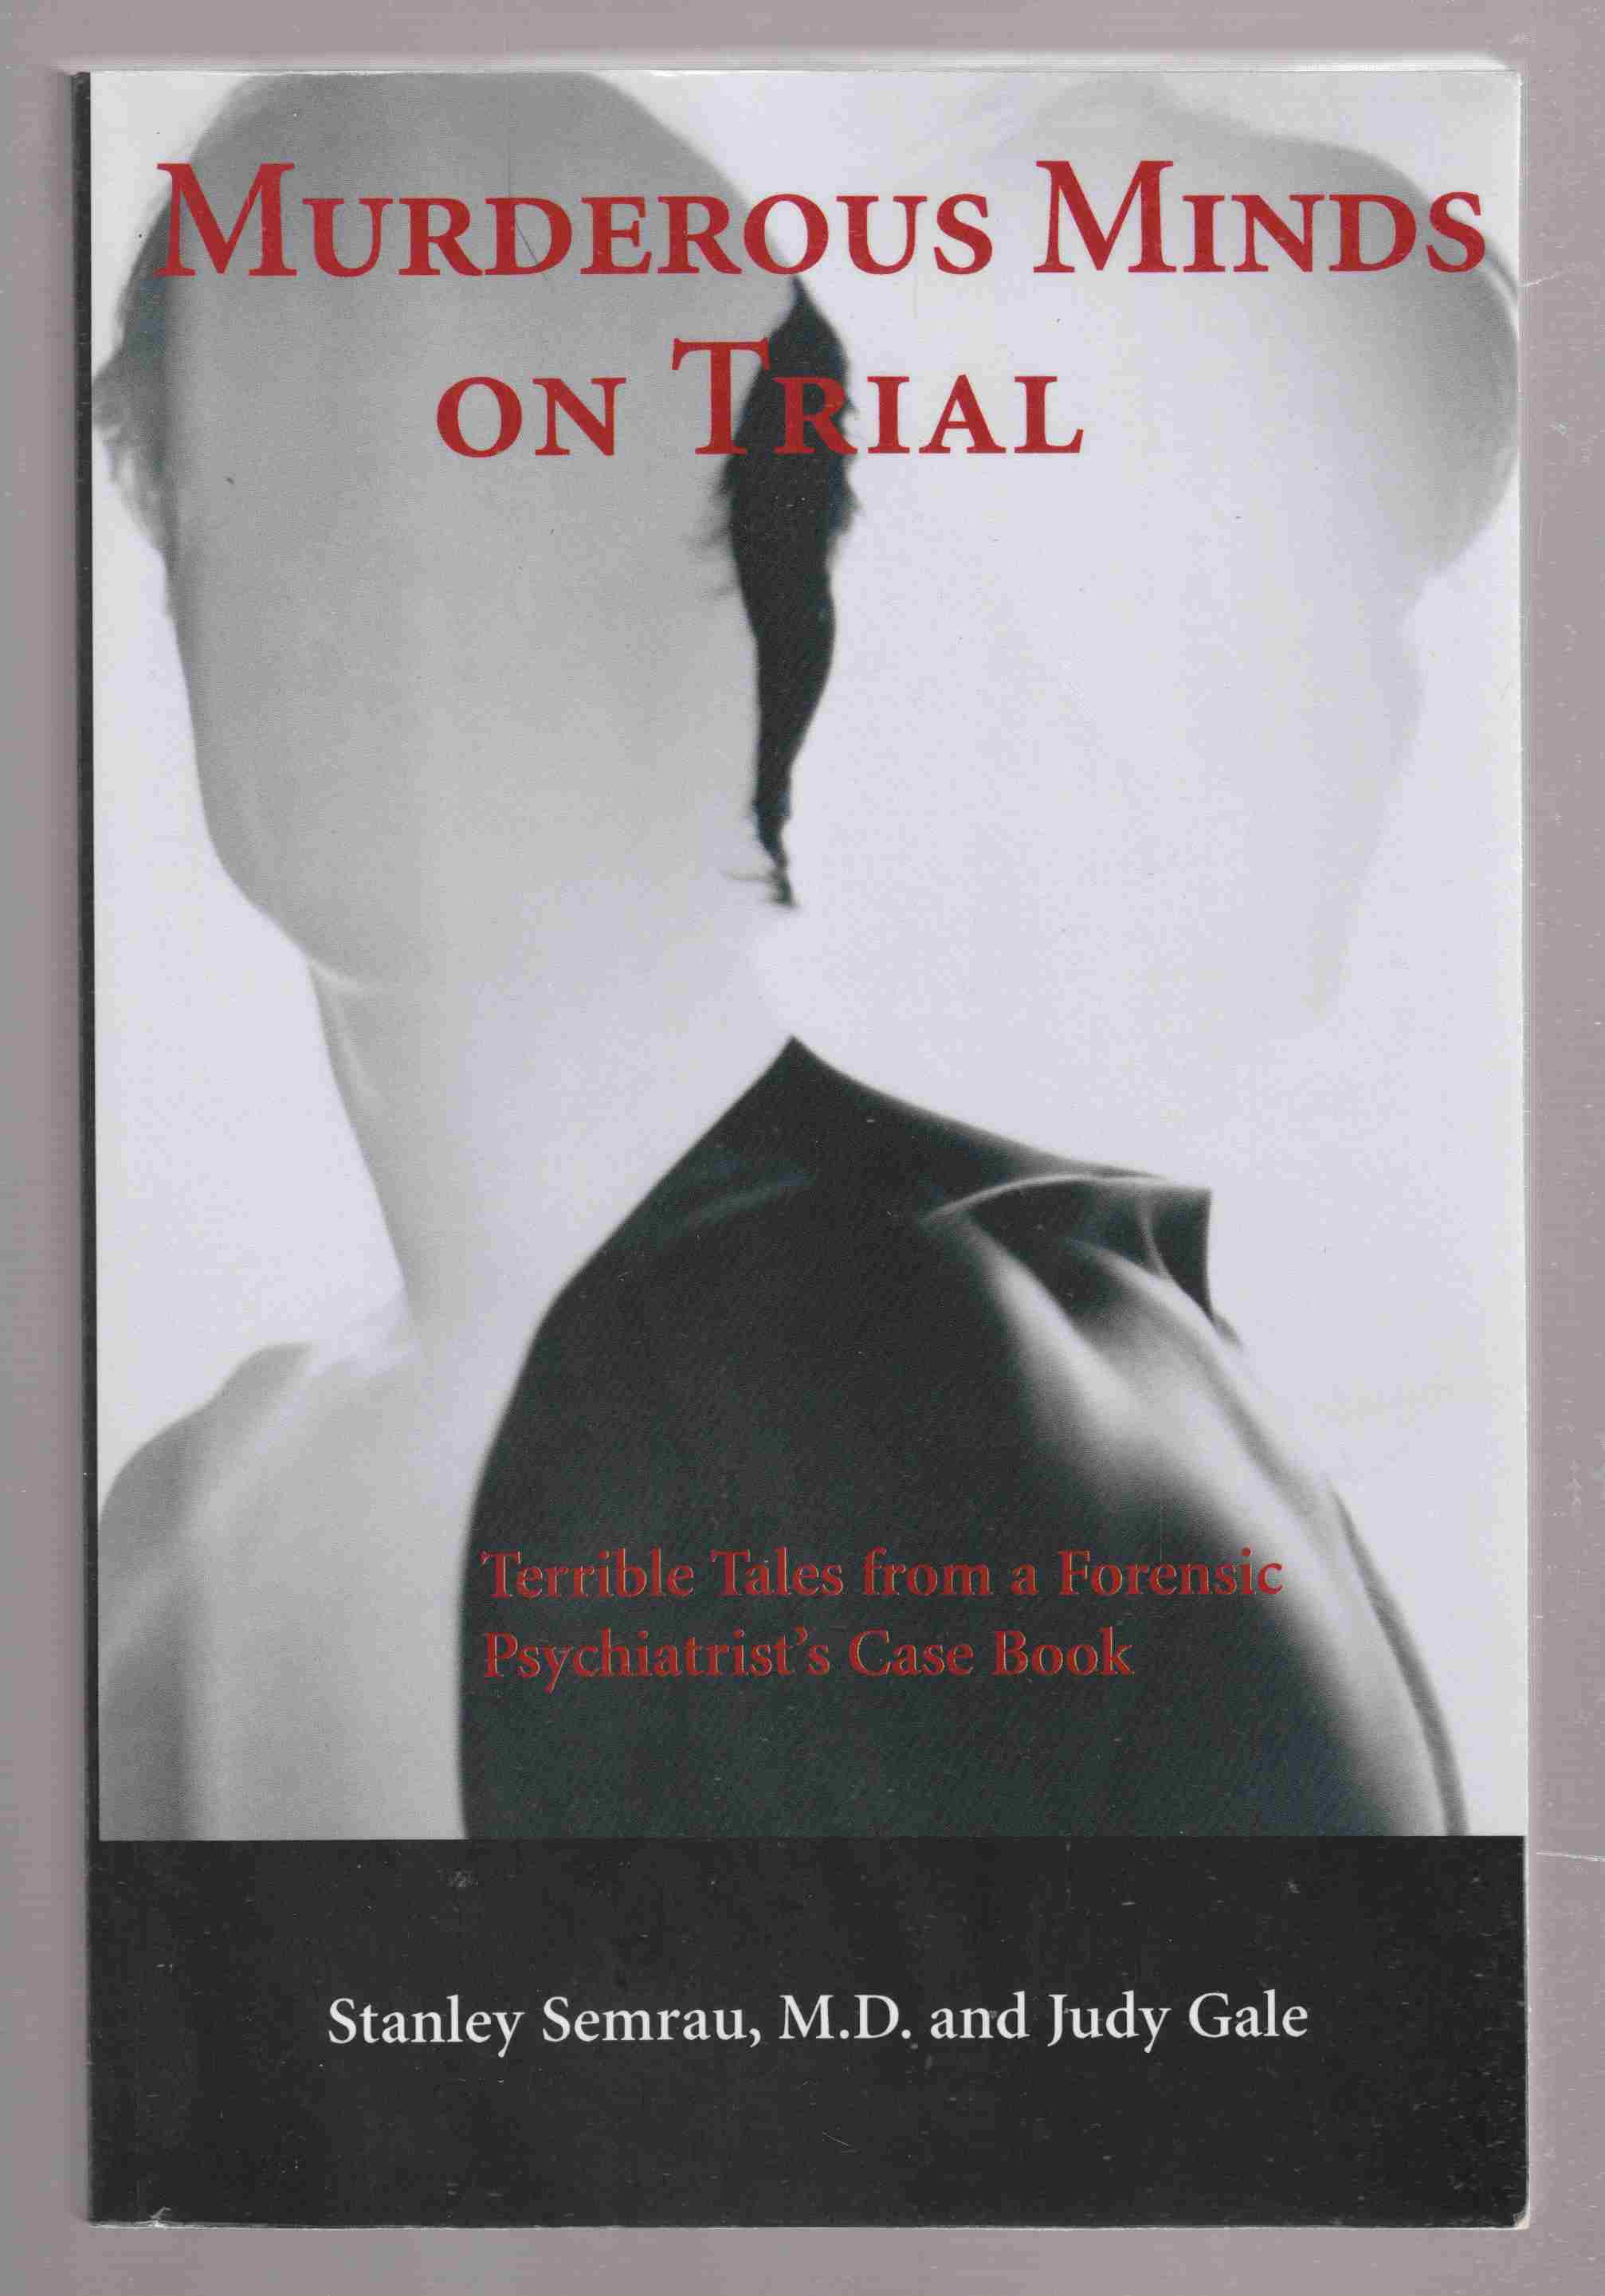 Image for Murderous Minds on Trial Terrible Tales from a Forensic Psychiatrist's Casebook